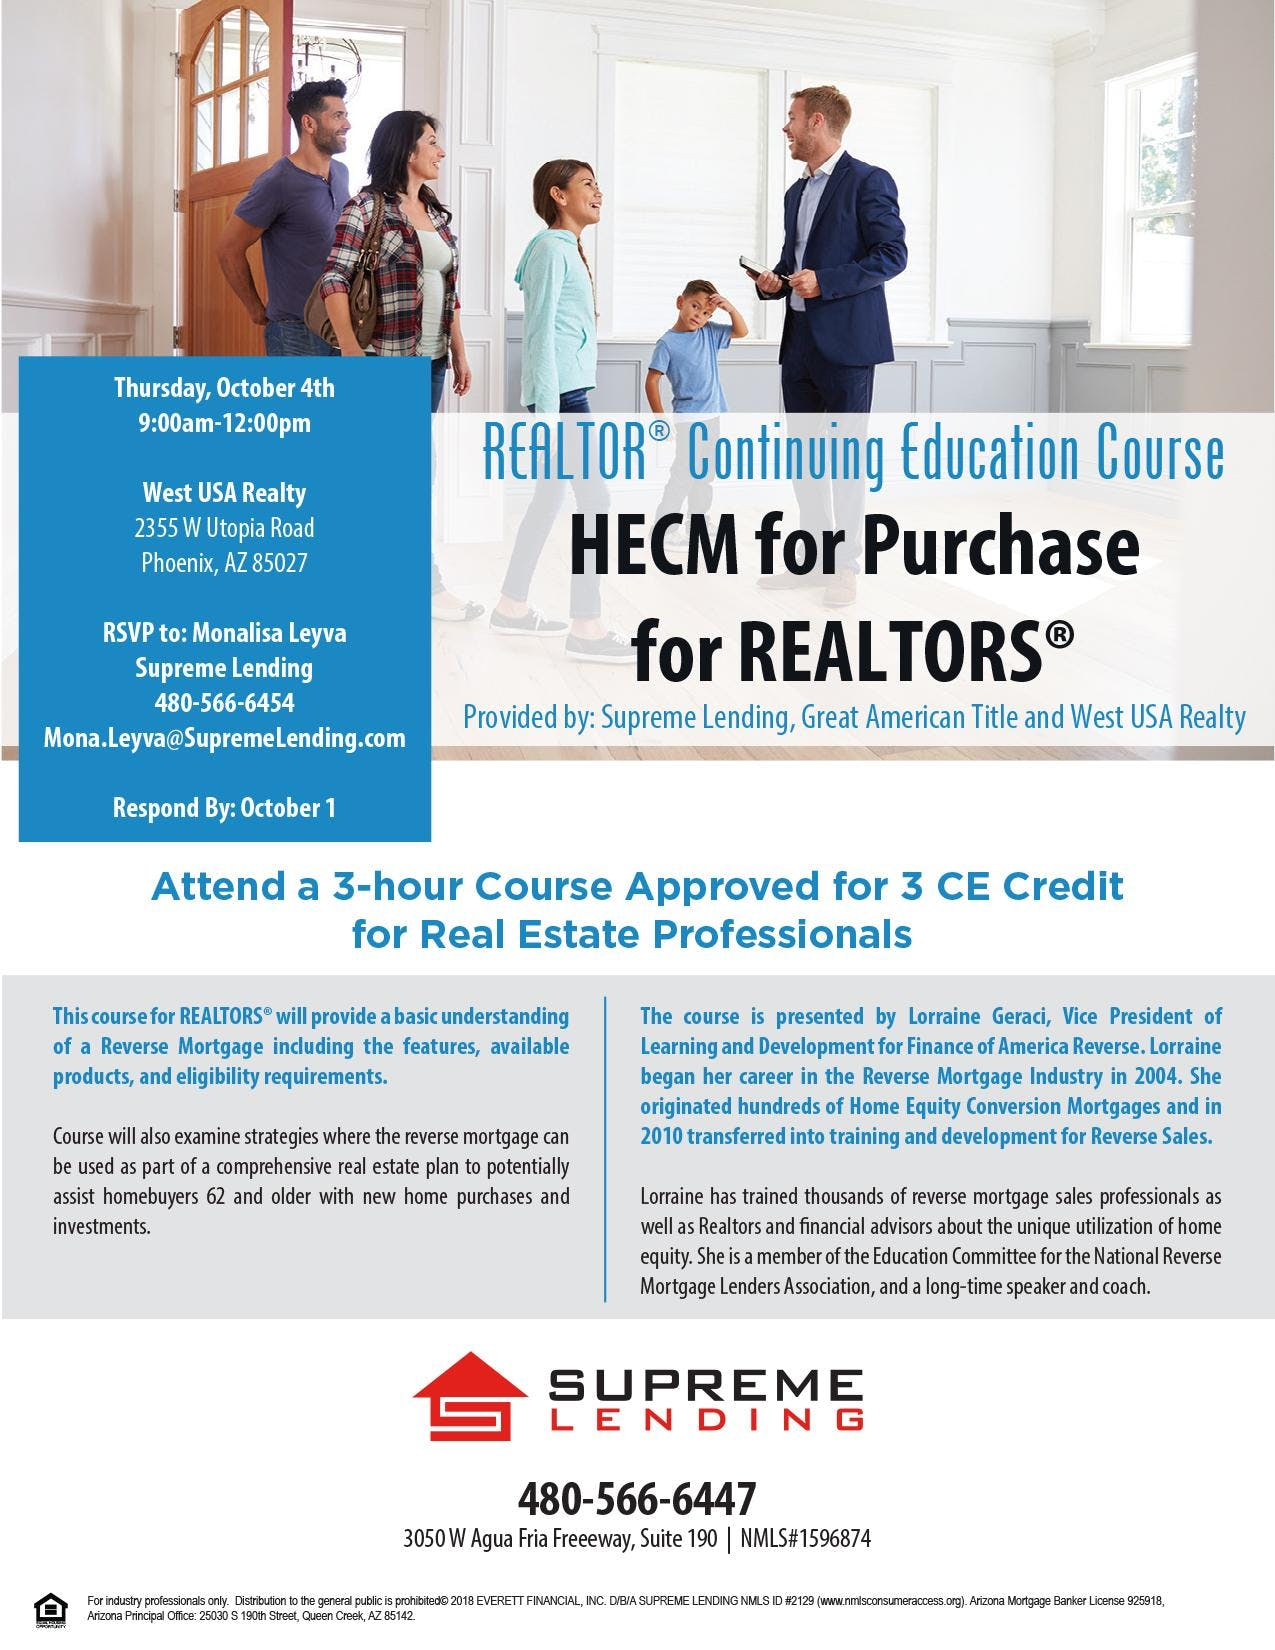 HECM for Purchase for REALTORS